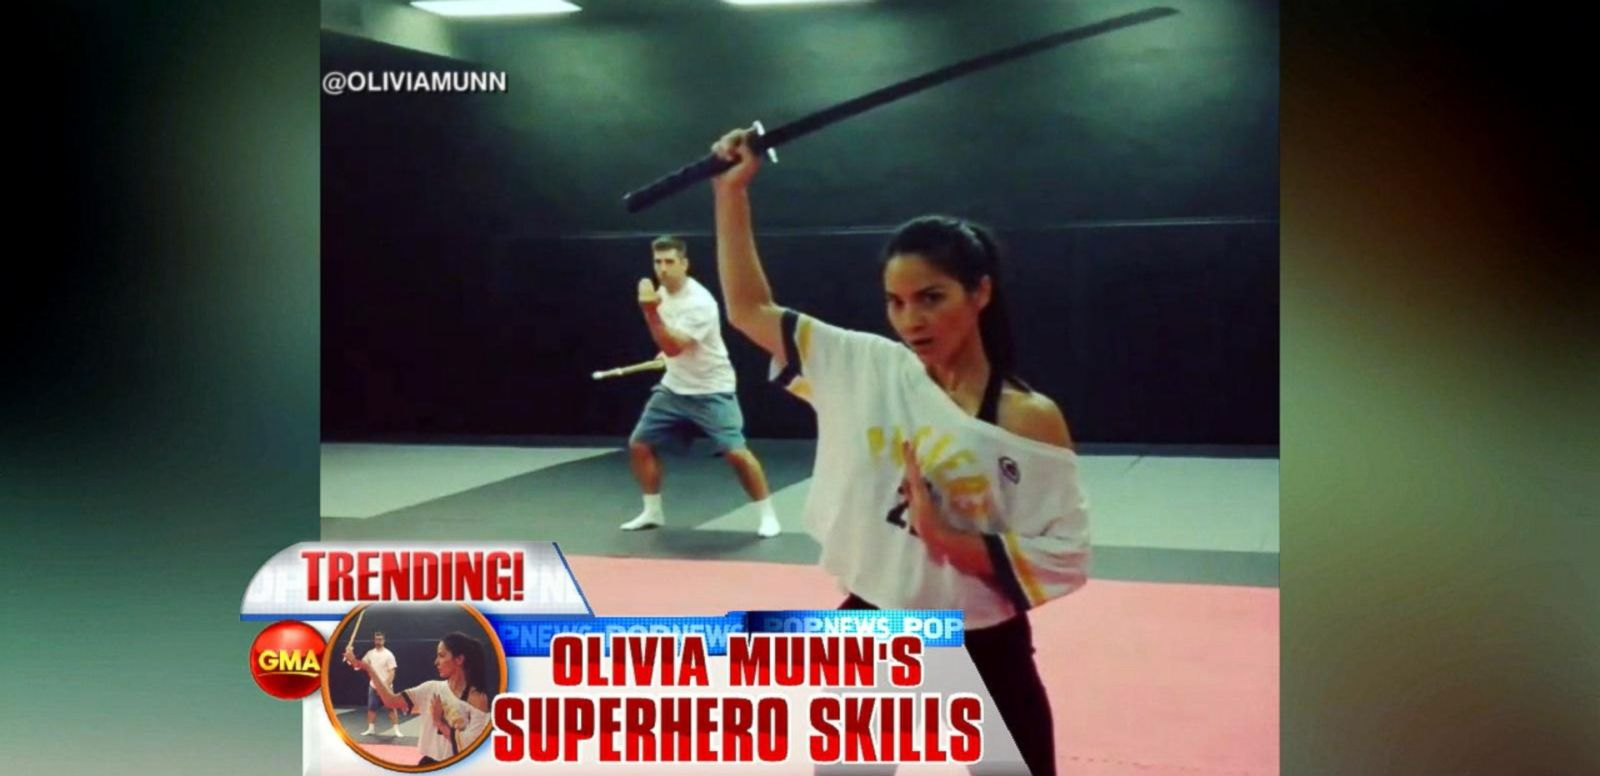 VIDEO: Aaron Rodgers Helps Girlfriend Olivia Munn Swing Into Action to Prepare for 'X-Men' Role